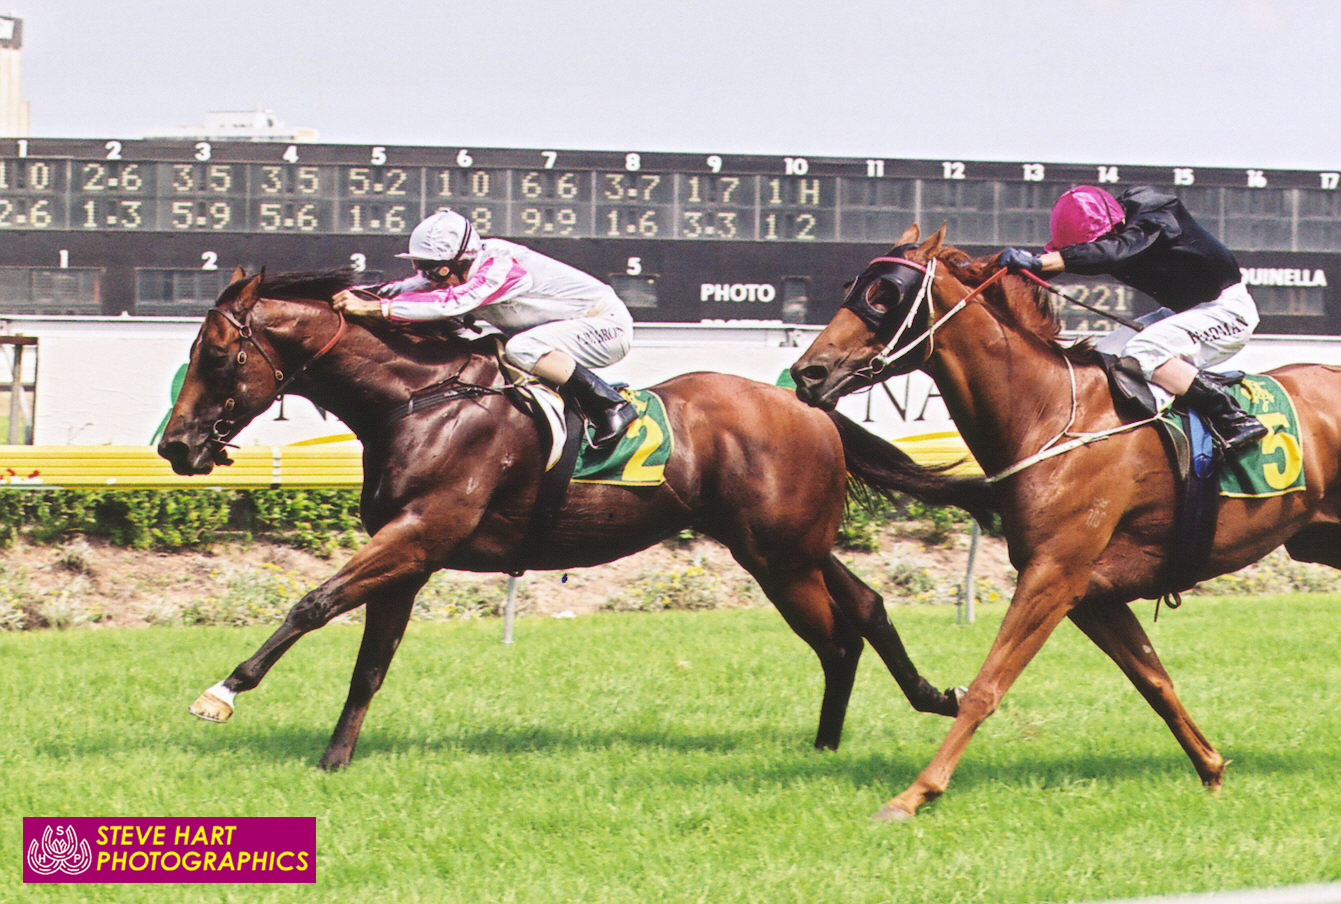 Image courtesy Steve Hart Photographics - Exceed And Excel (Corey Brown) wins the 2004 Royal Sovereign Stakes from Ambulance (Darren Beadman). Ambulance later raced in Hong Kong as Lightning Star.